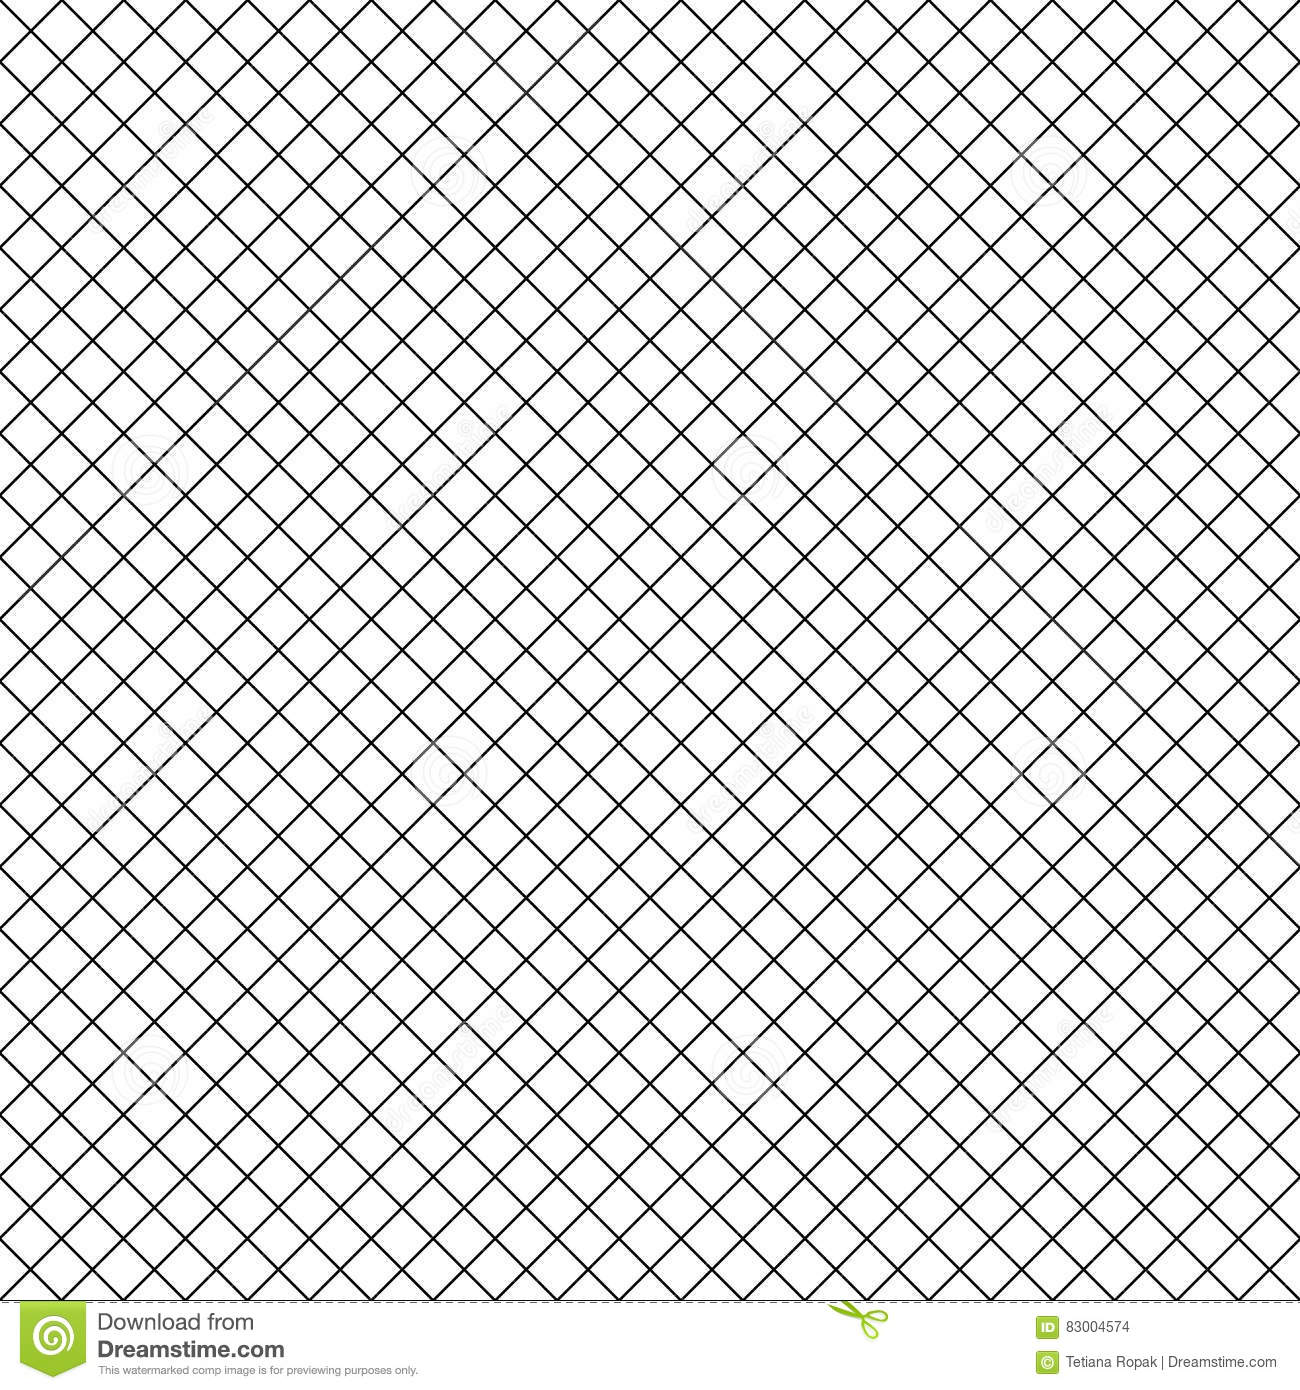 Grid Seamless Pattern. Hexagonal Graphic Design.Vector Illustration ...